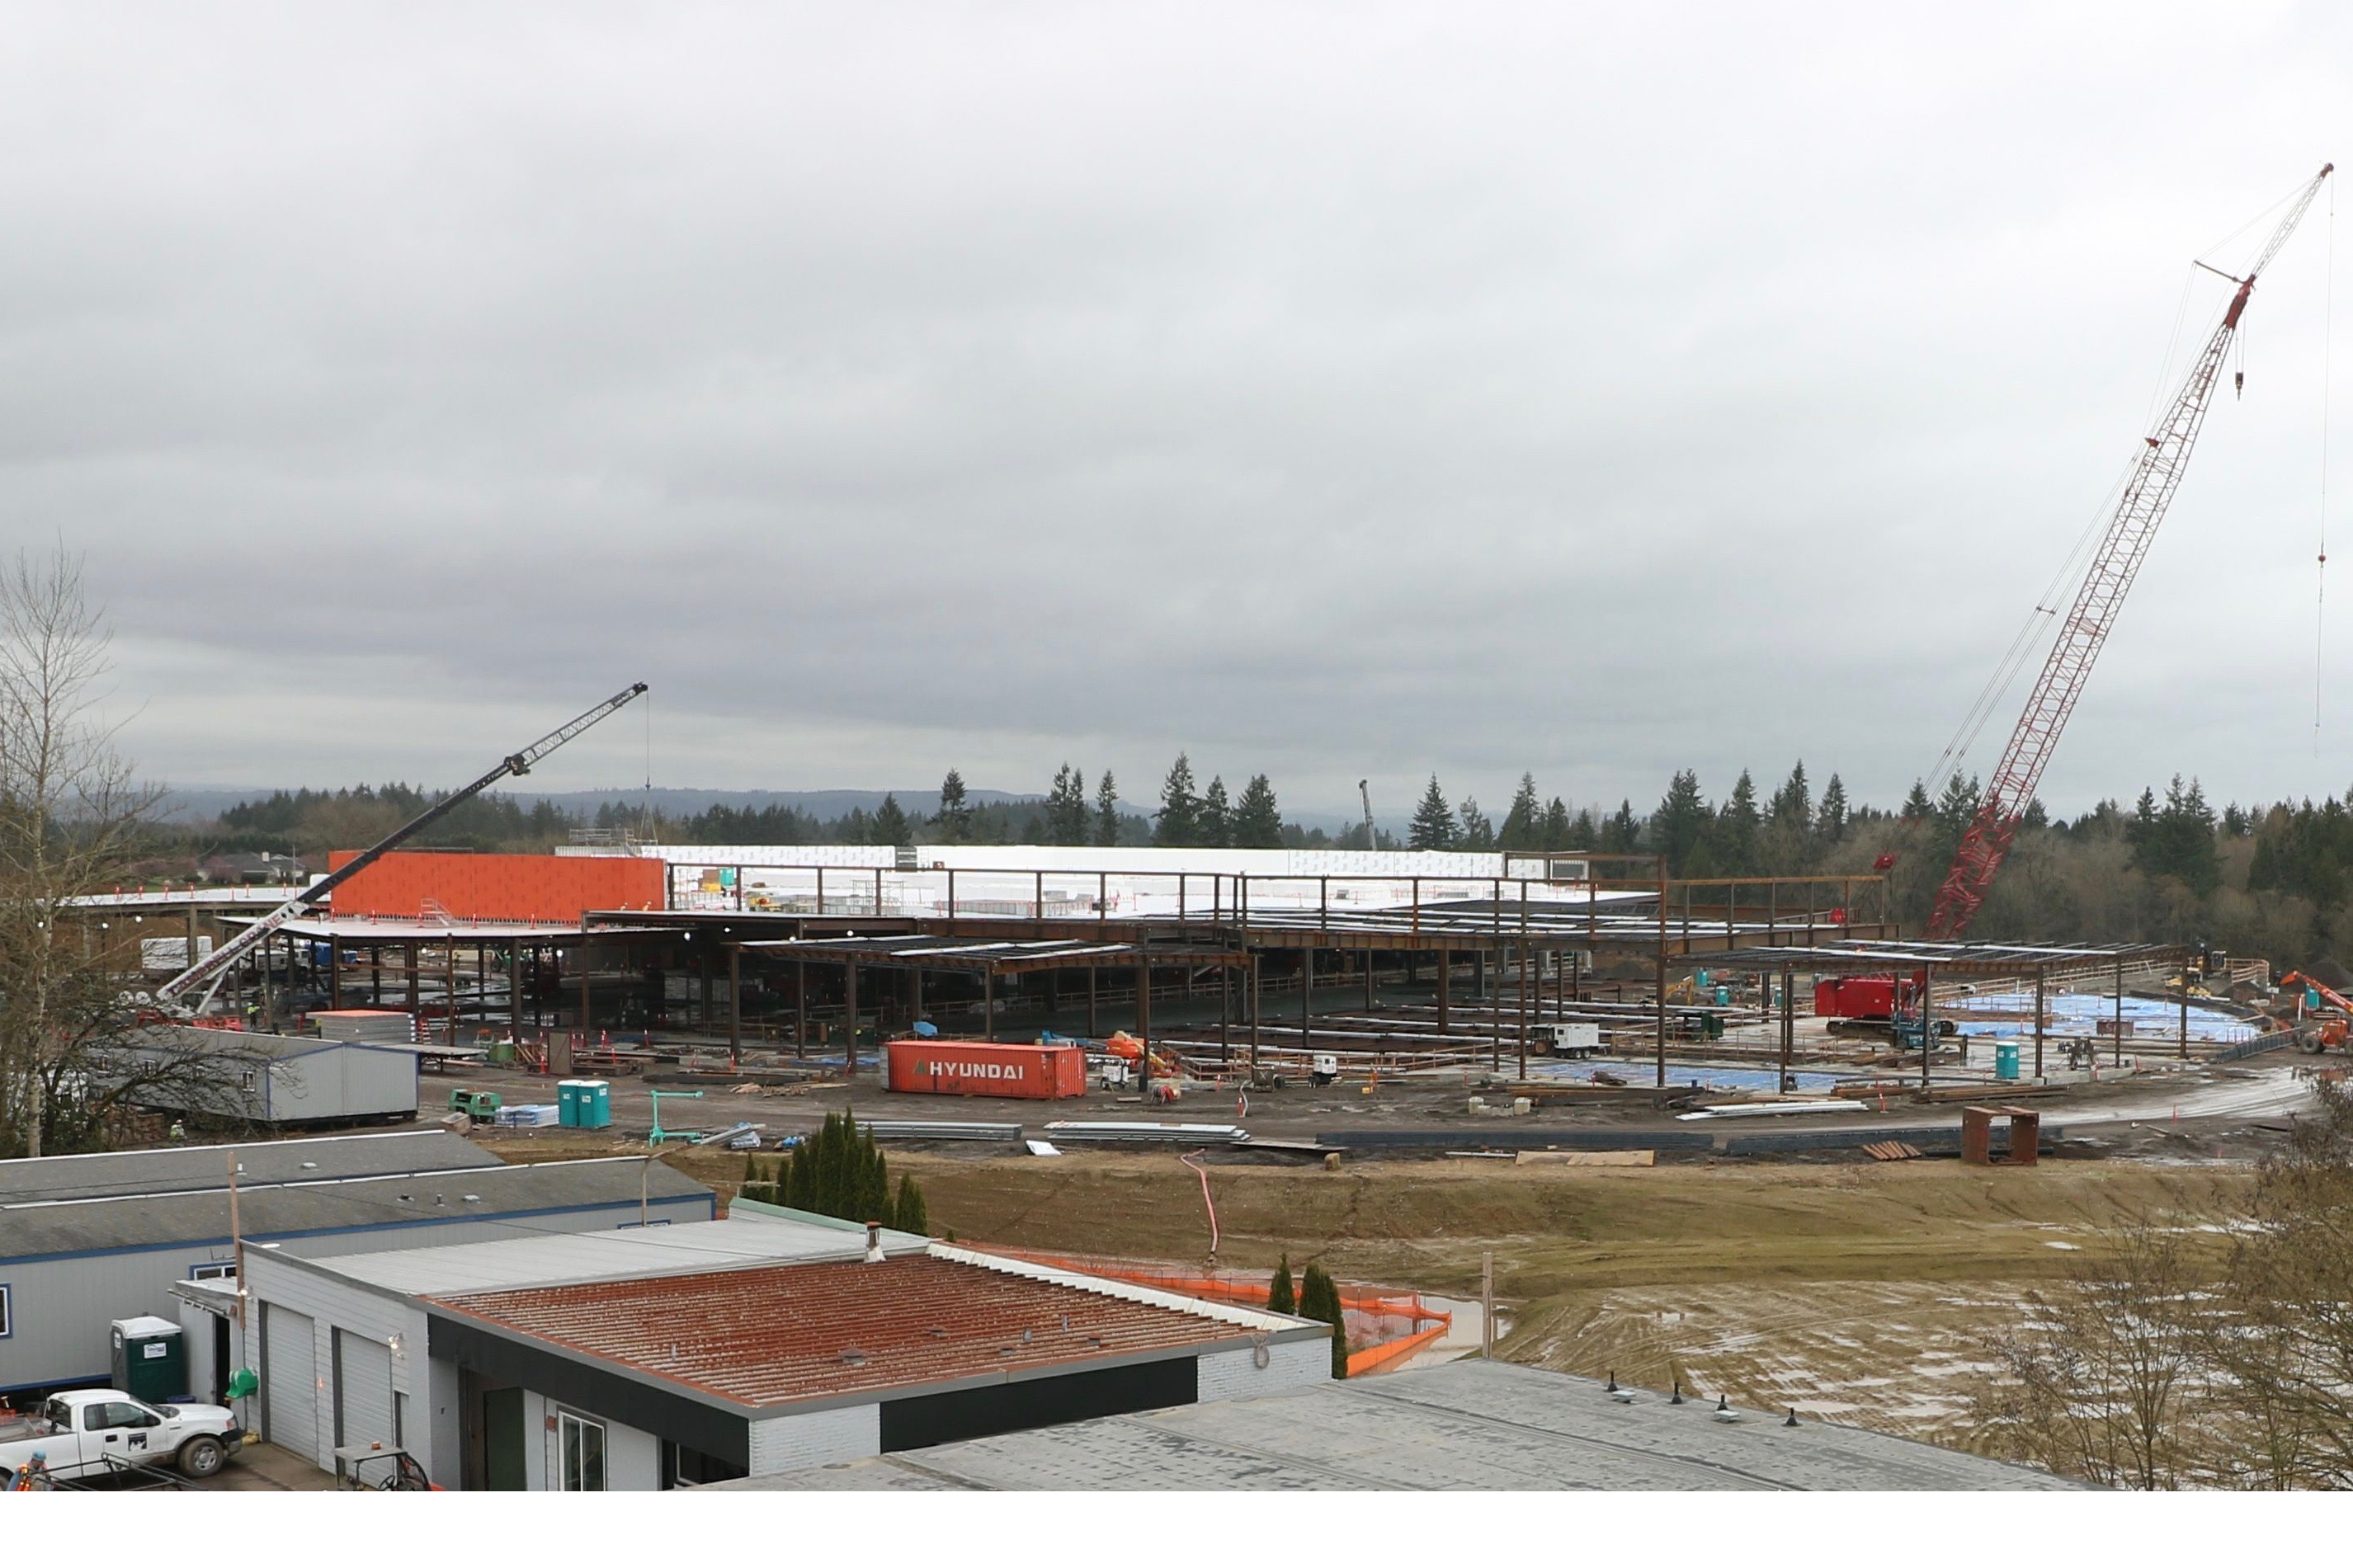 Cowlitz Tribe won't stop working on casino despite county threat